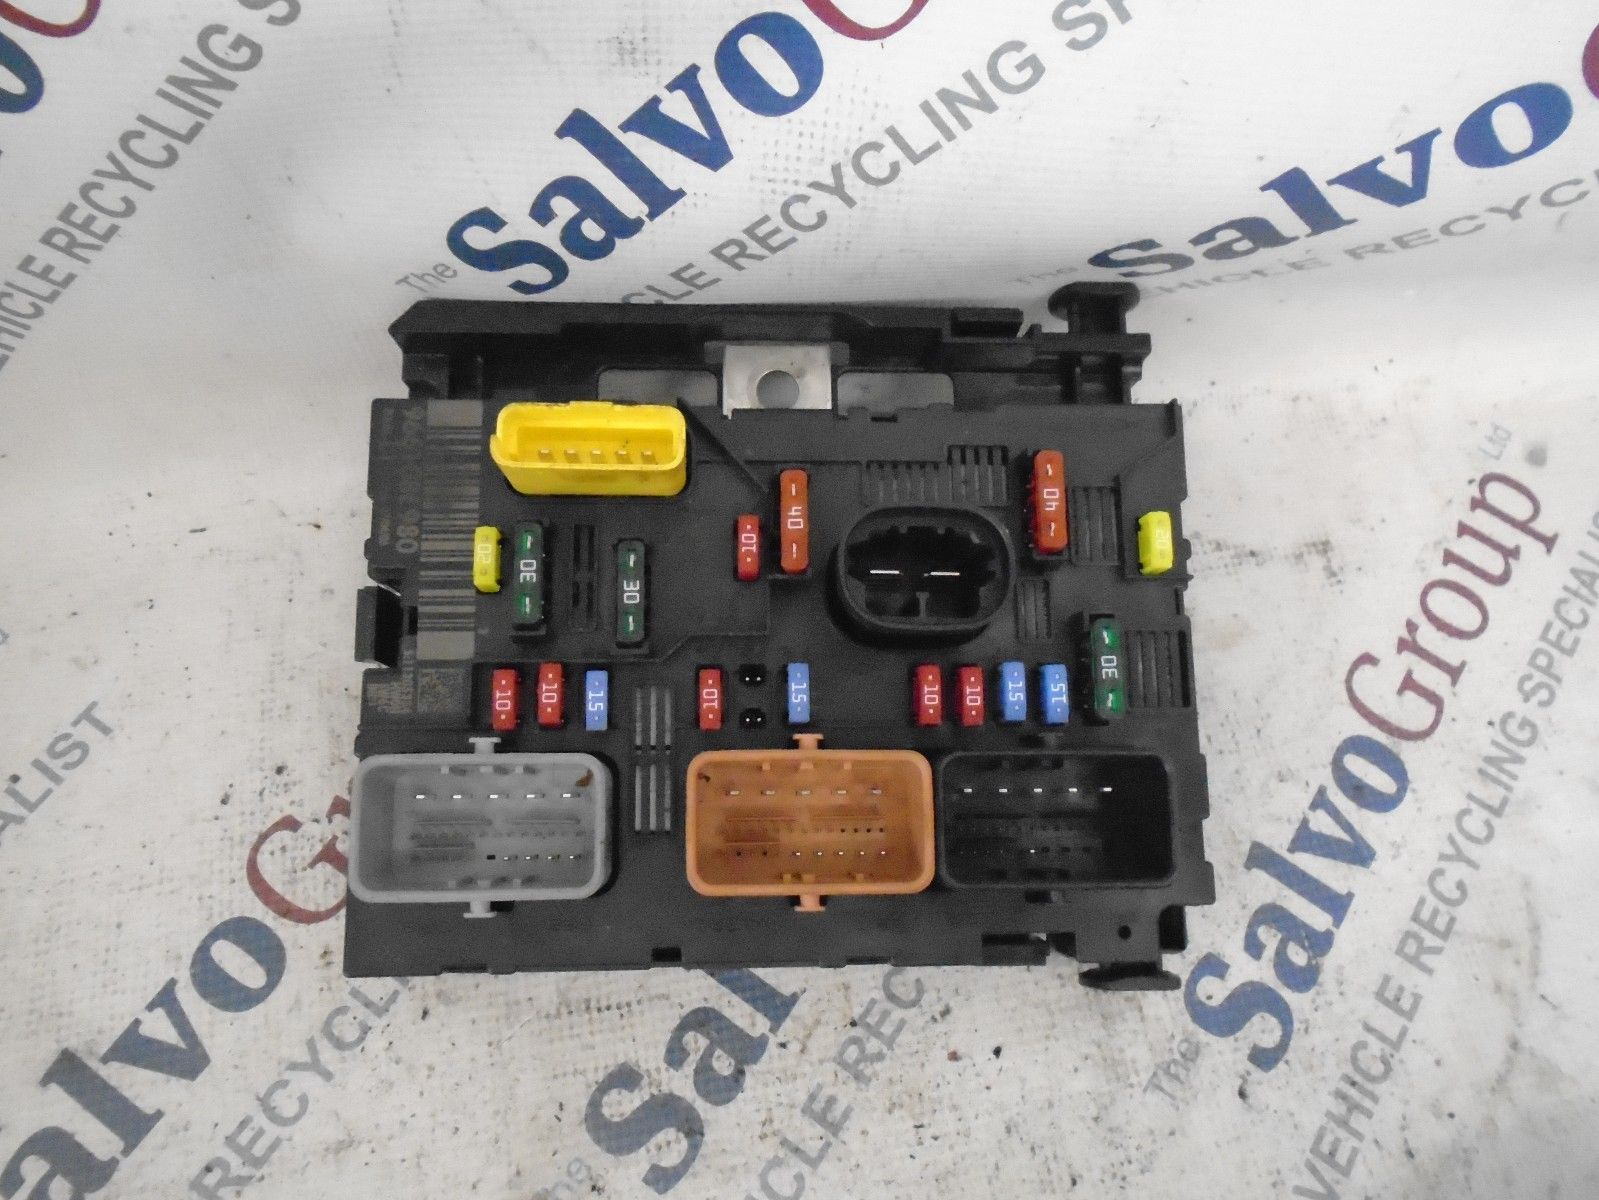 hight resolution of fuse box in citroen c2 wiring diagrams scematic citroen c2 fuse box problems  [ 1599 x 1200 Pixel ]